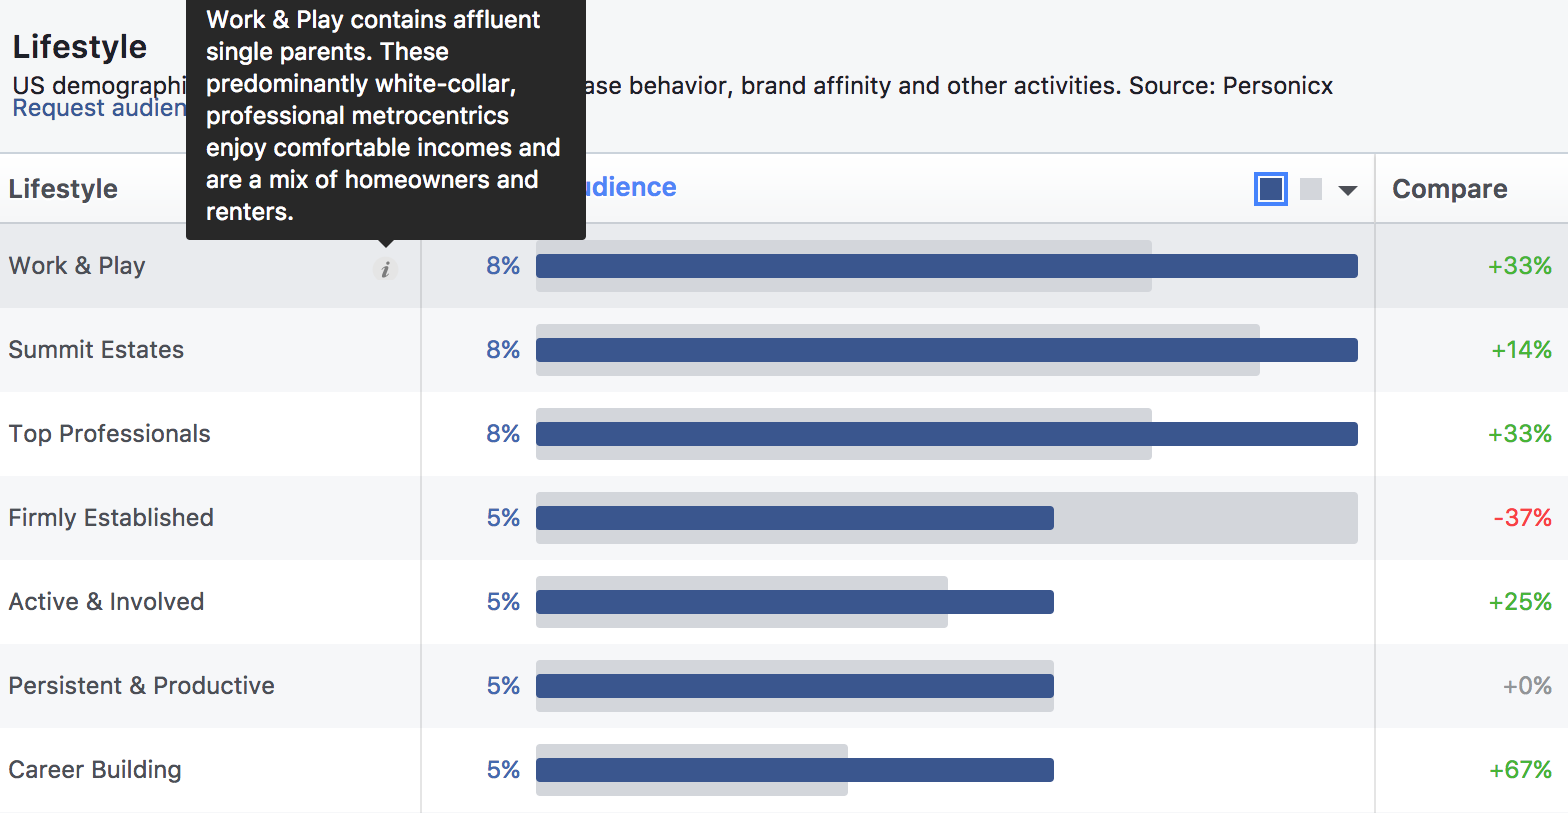 Facebook Audience Insights Lifestyle chart